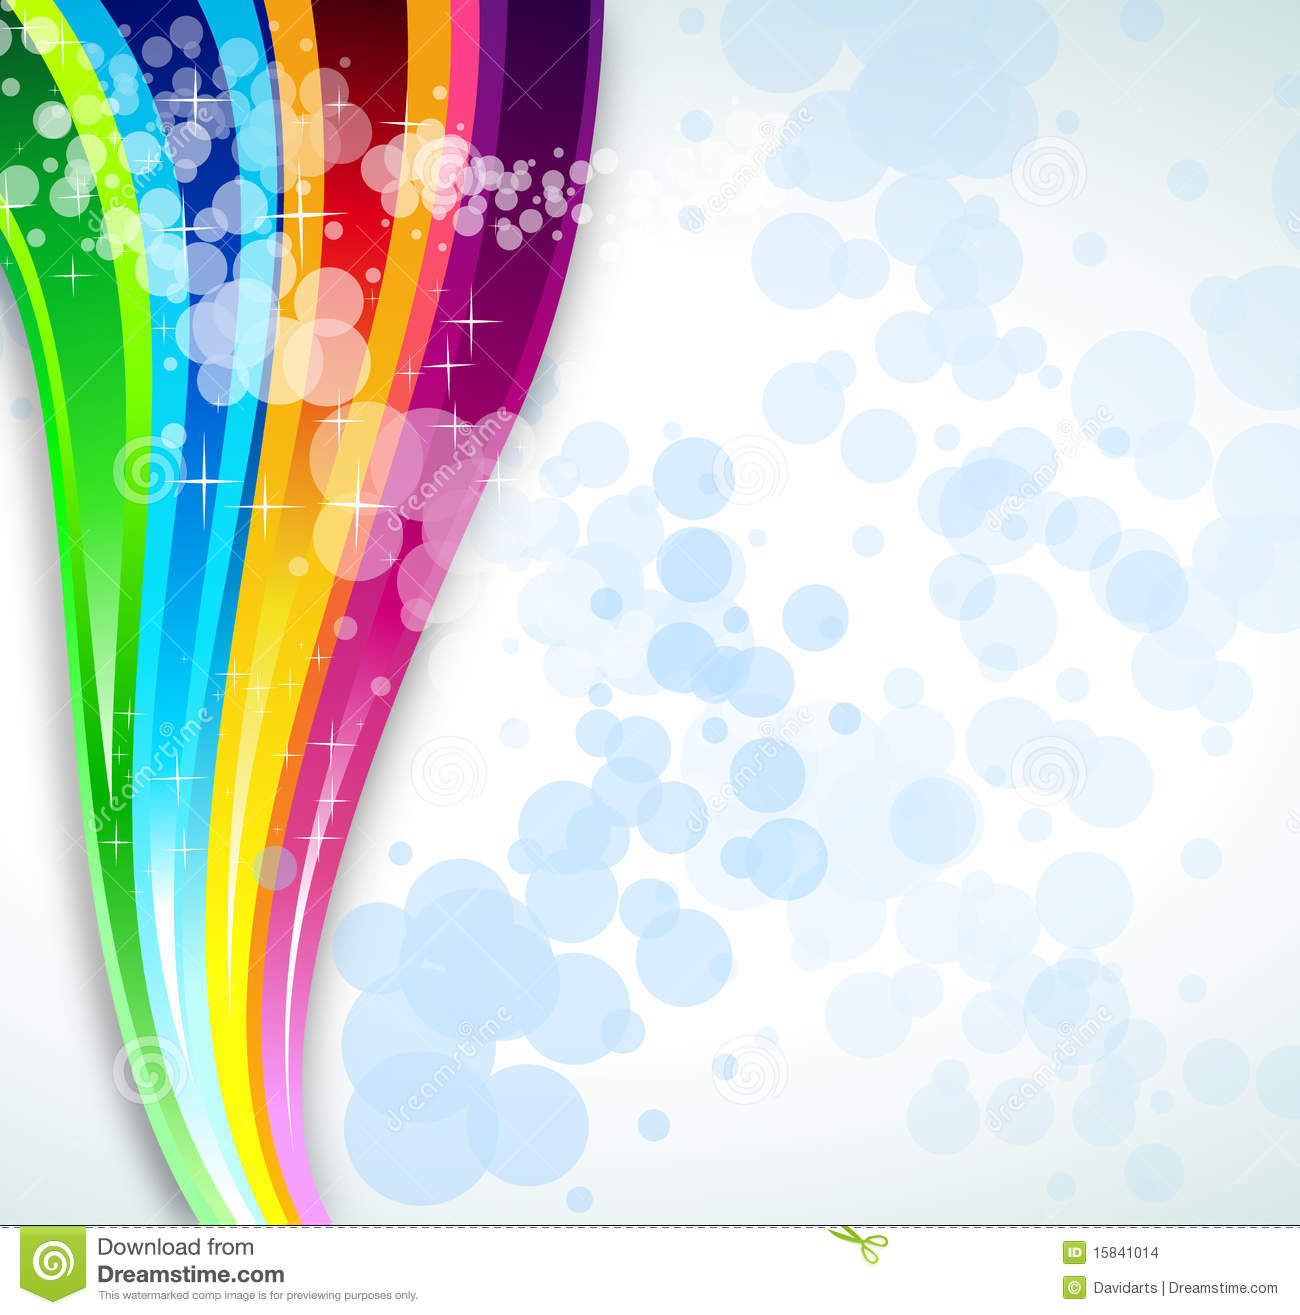 blank map of us to color with Stock Images Rainbow Spectrum Background Brochure Flyers Image15841014 on Stock Images Spilled Pill Bottle Image29478484 together with Map Of additionally Oi Wwe Divas Bra Size in addition World as well Blue Soccer Bday Card.